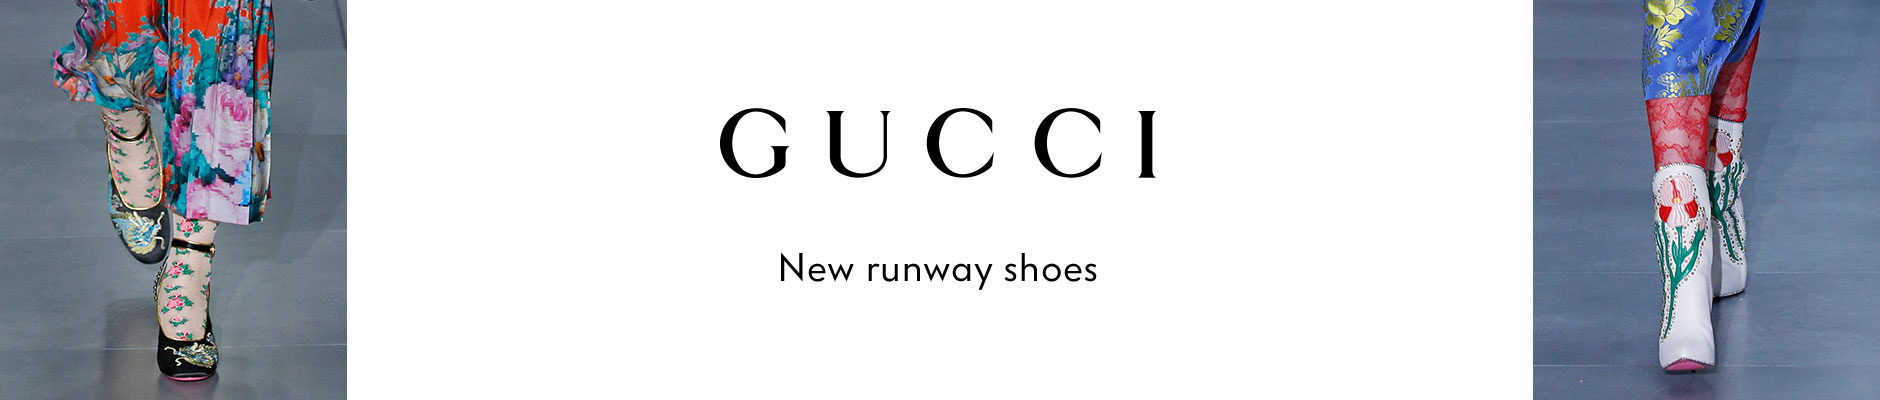 Gucci - New runway shoes